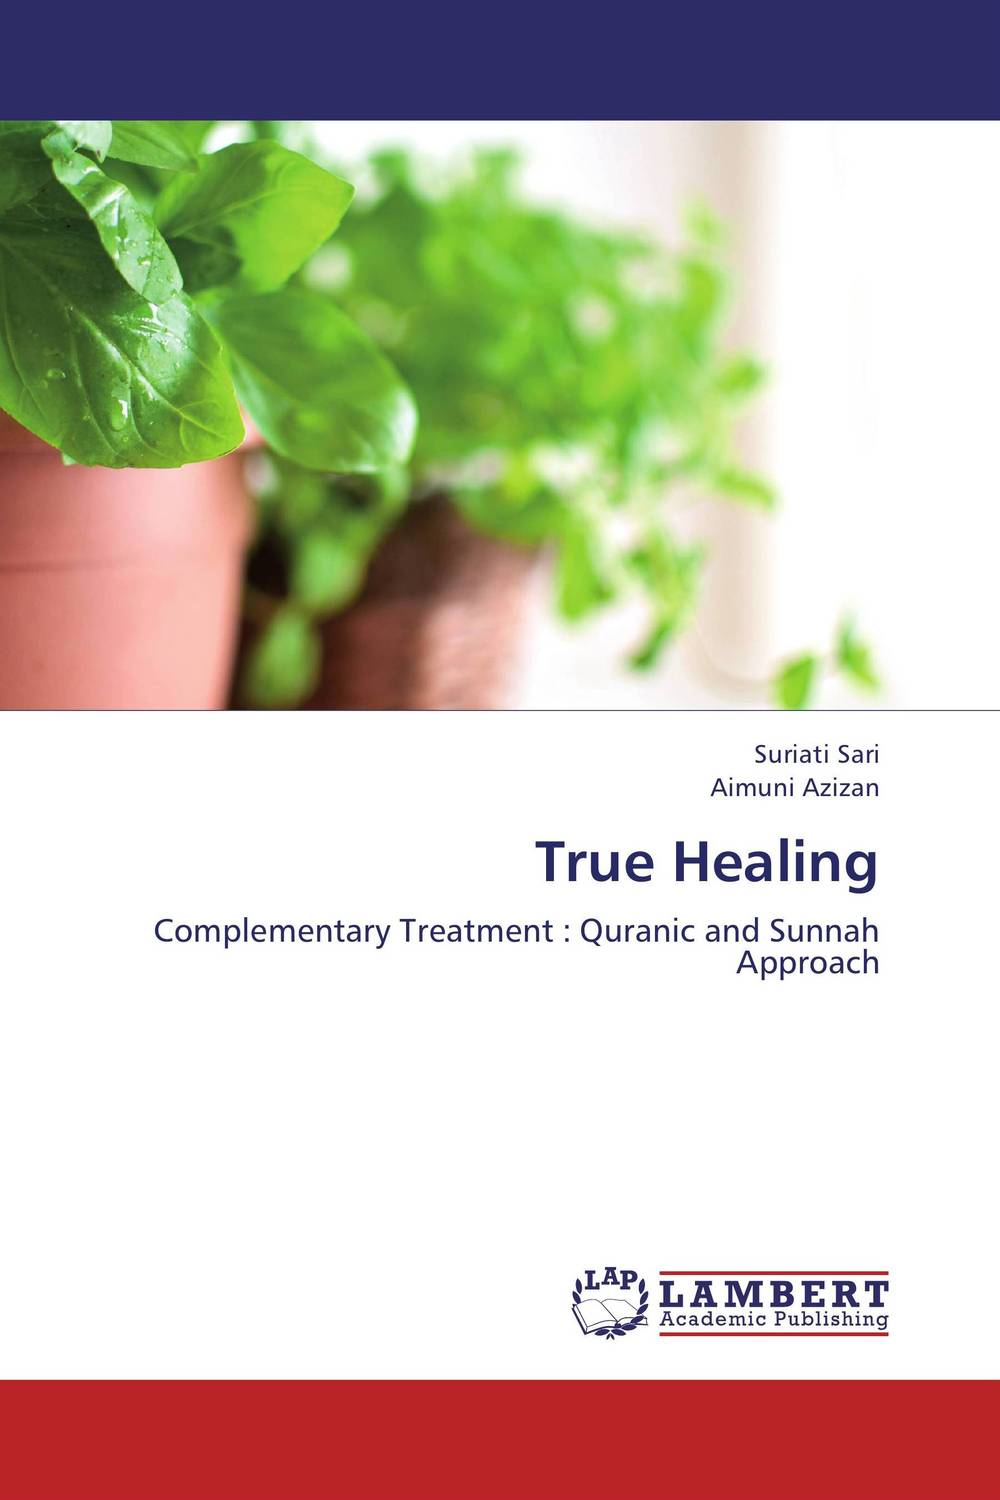 True Healing peter lockhart b oral medicine and medically complex patients